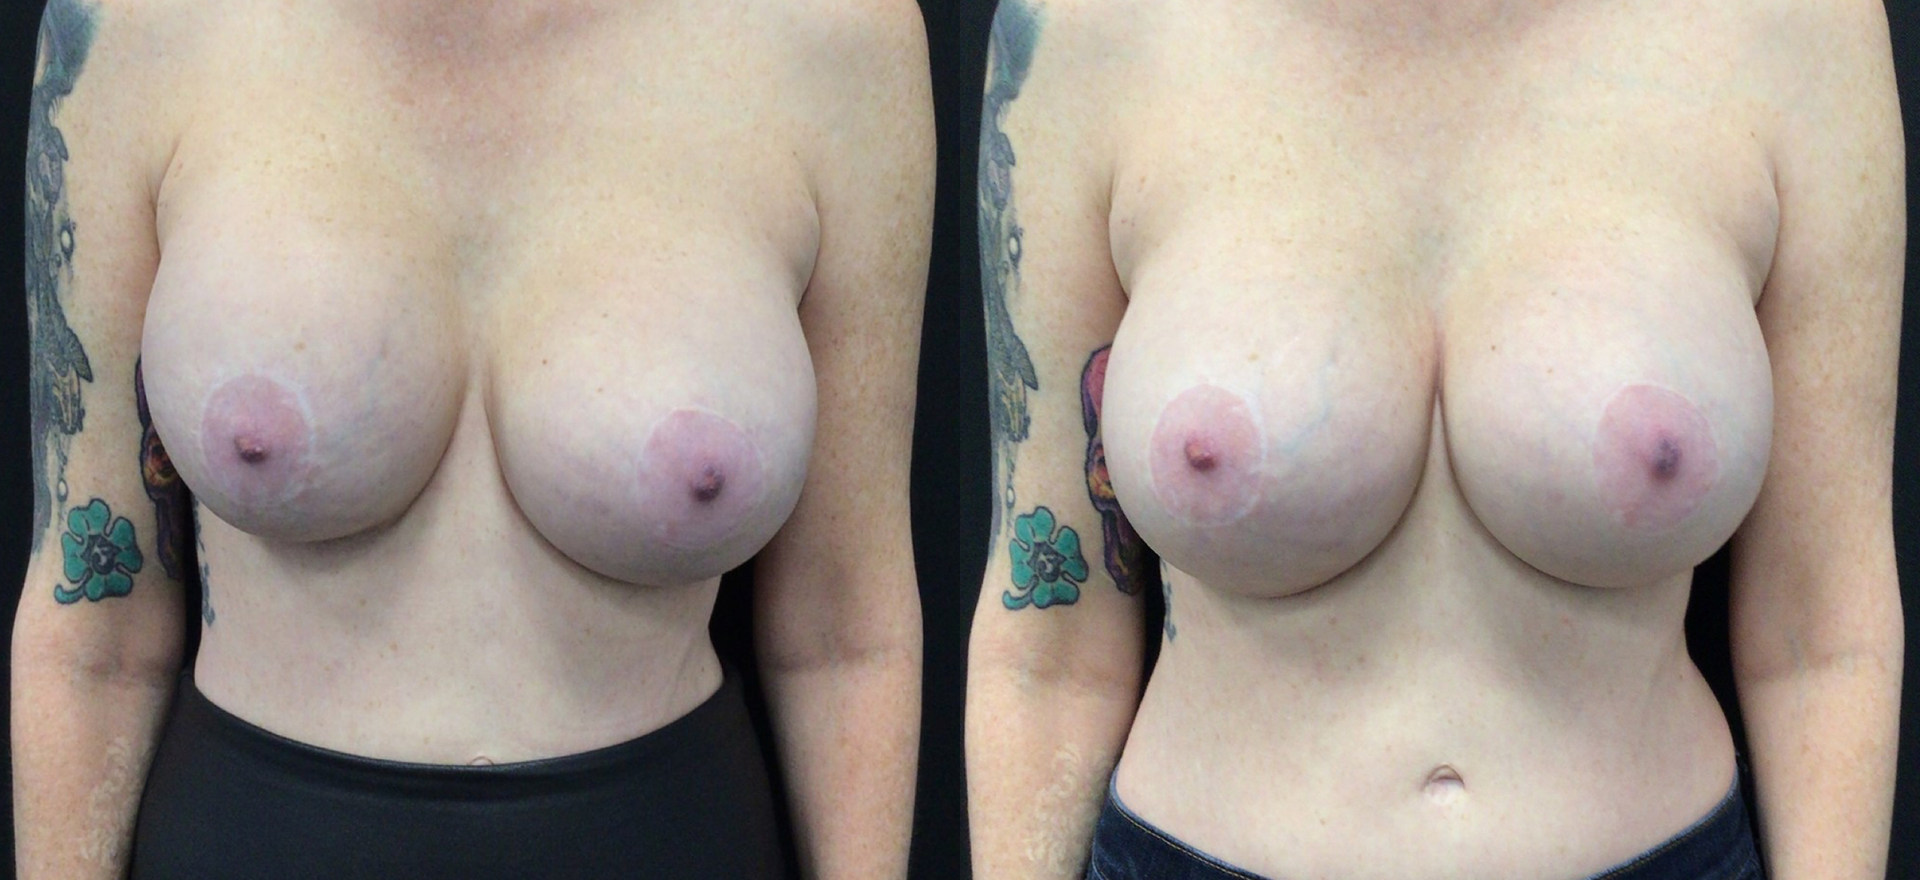 Before and After Breast Implant Exchange